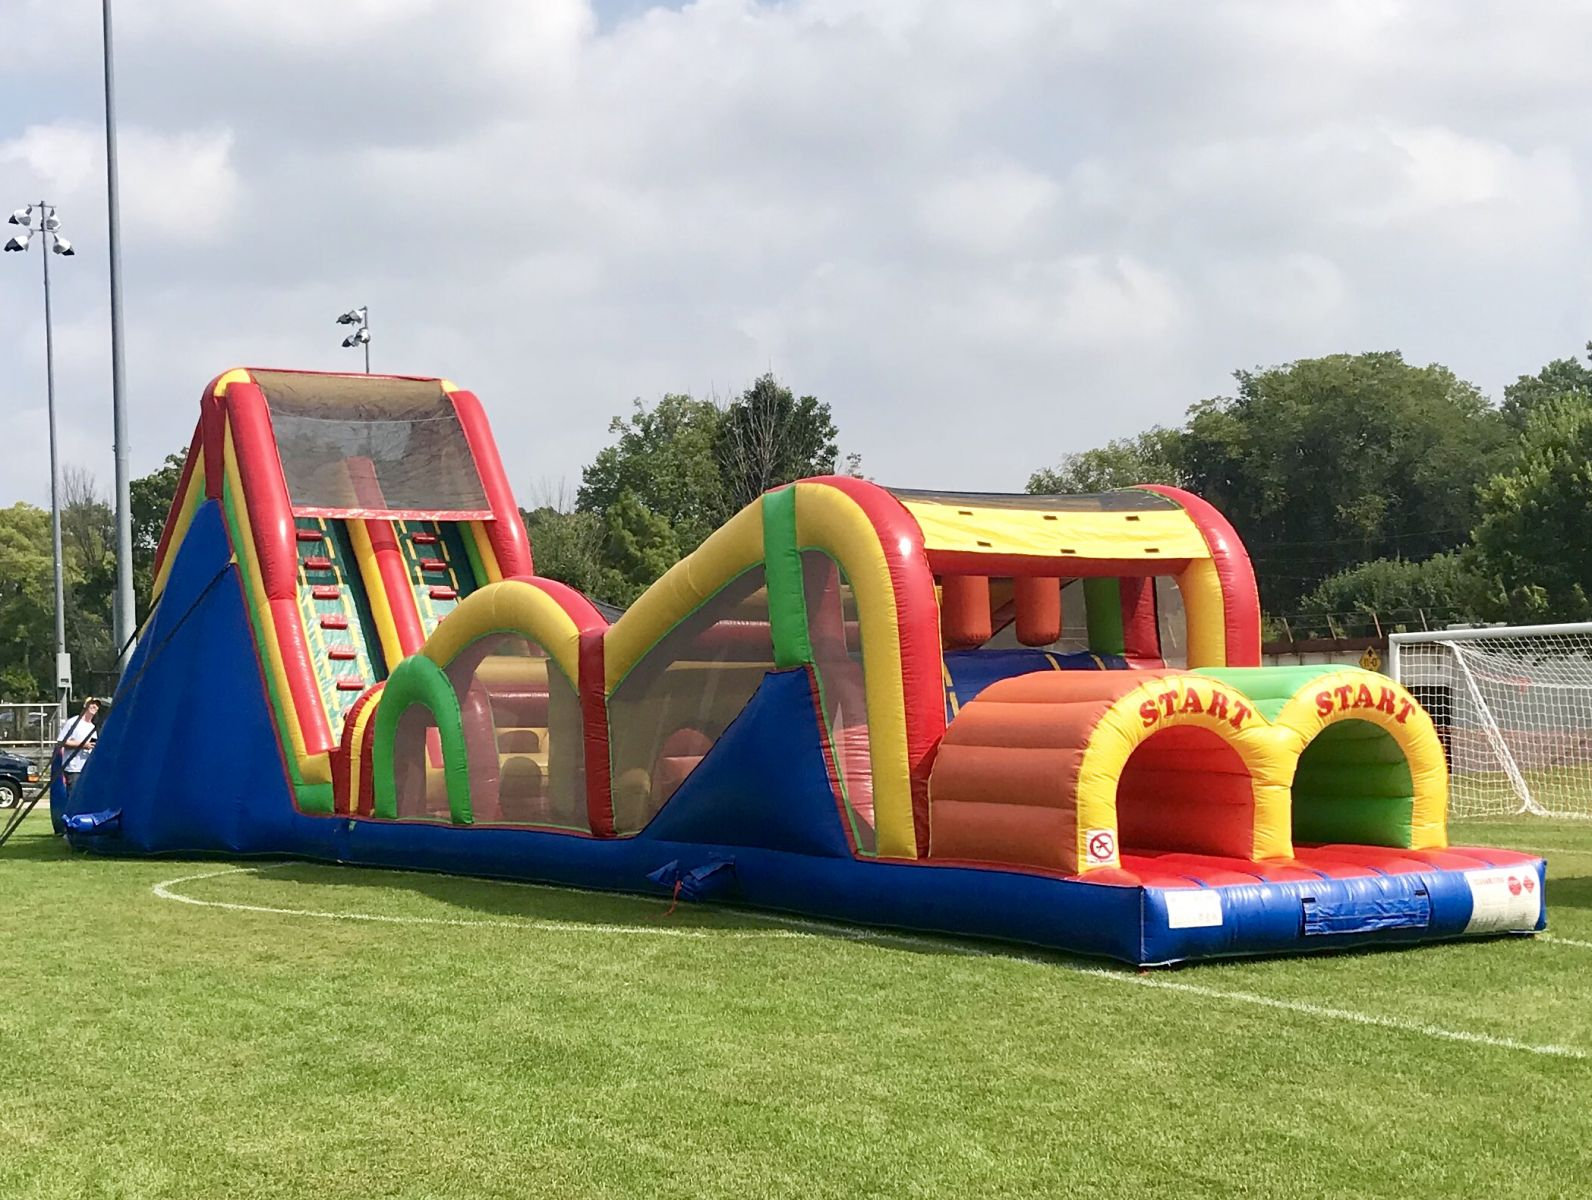 77ft. Extreme Obstacle Course Rental